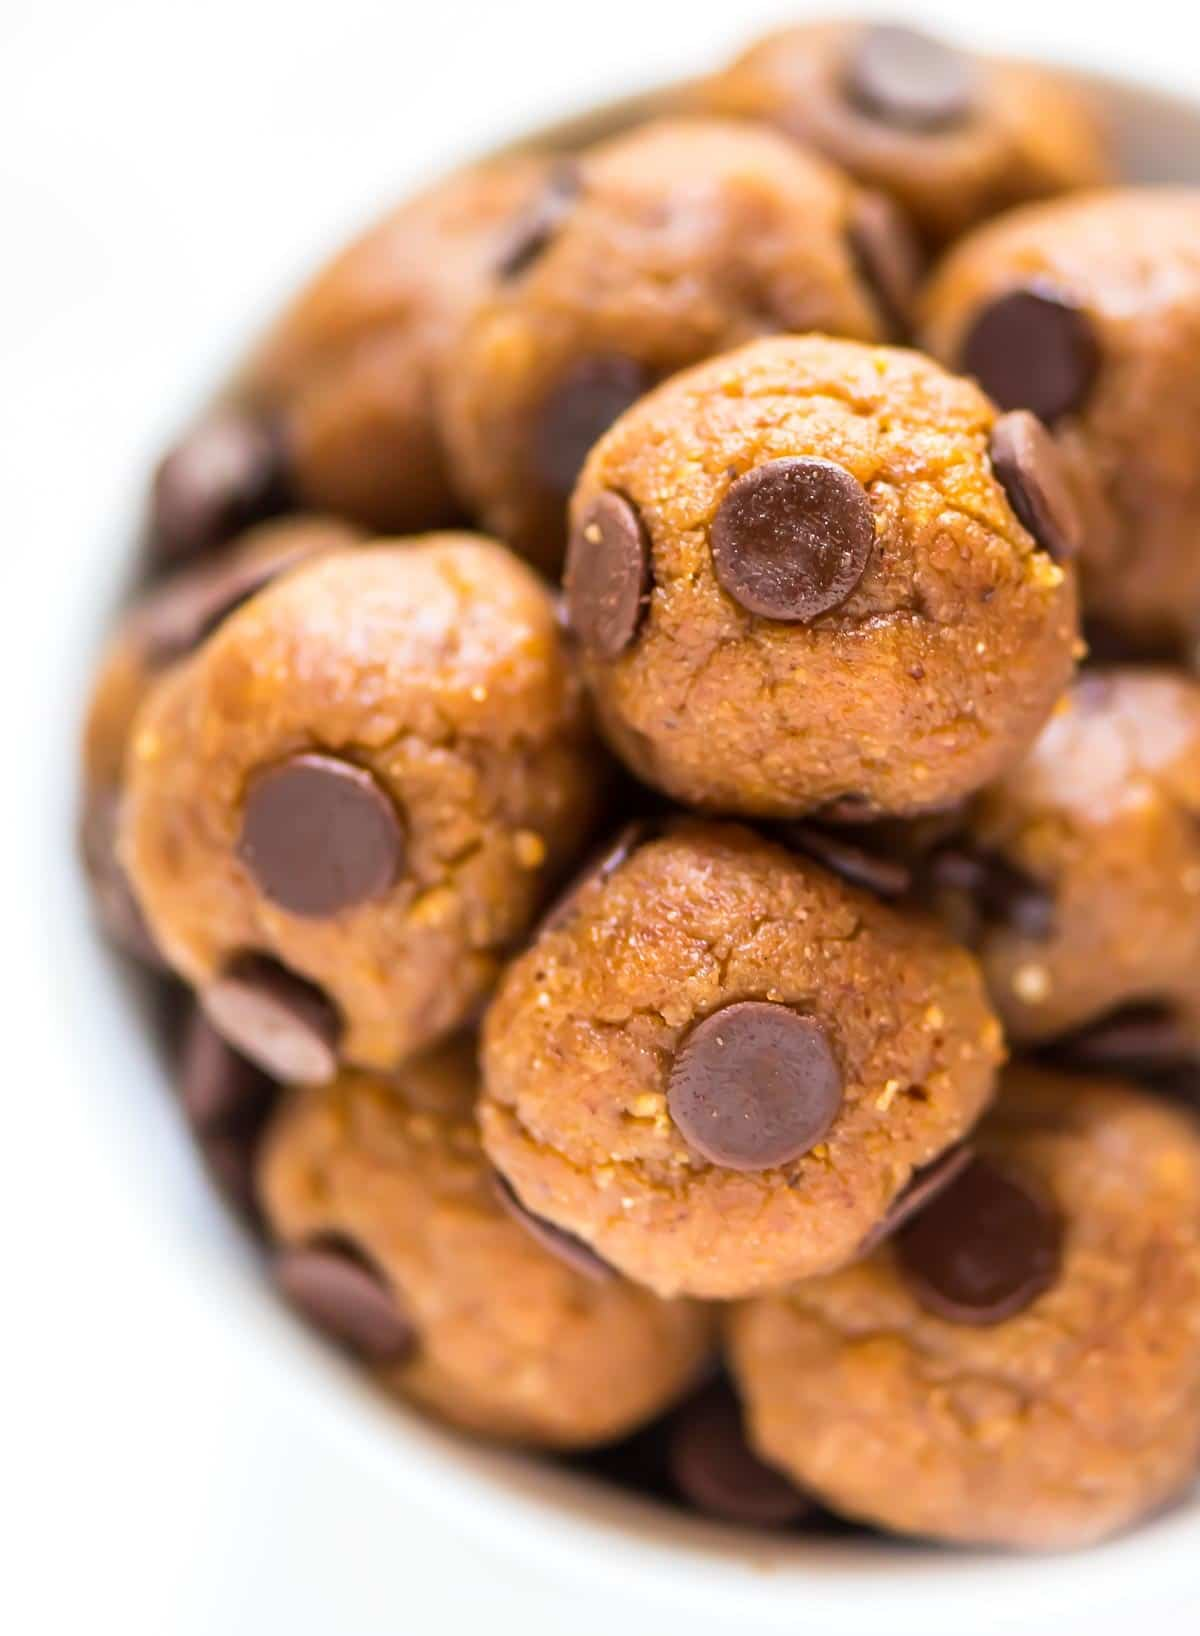 No Bake Cookie Dough Protein Balls | Well Plated by Erin